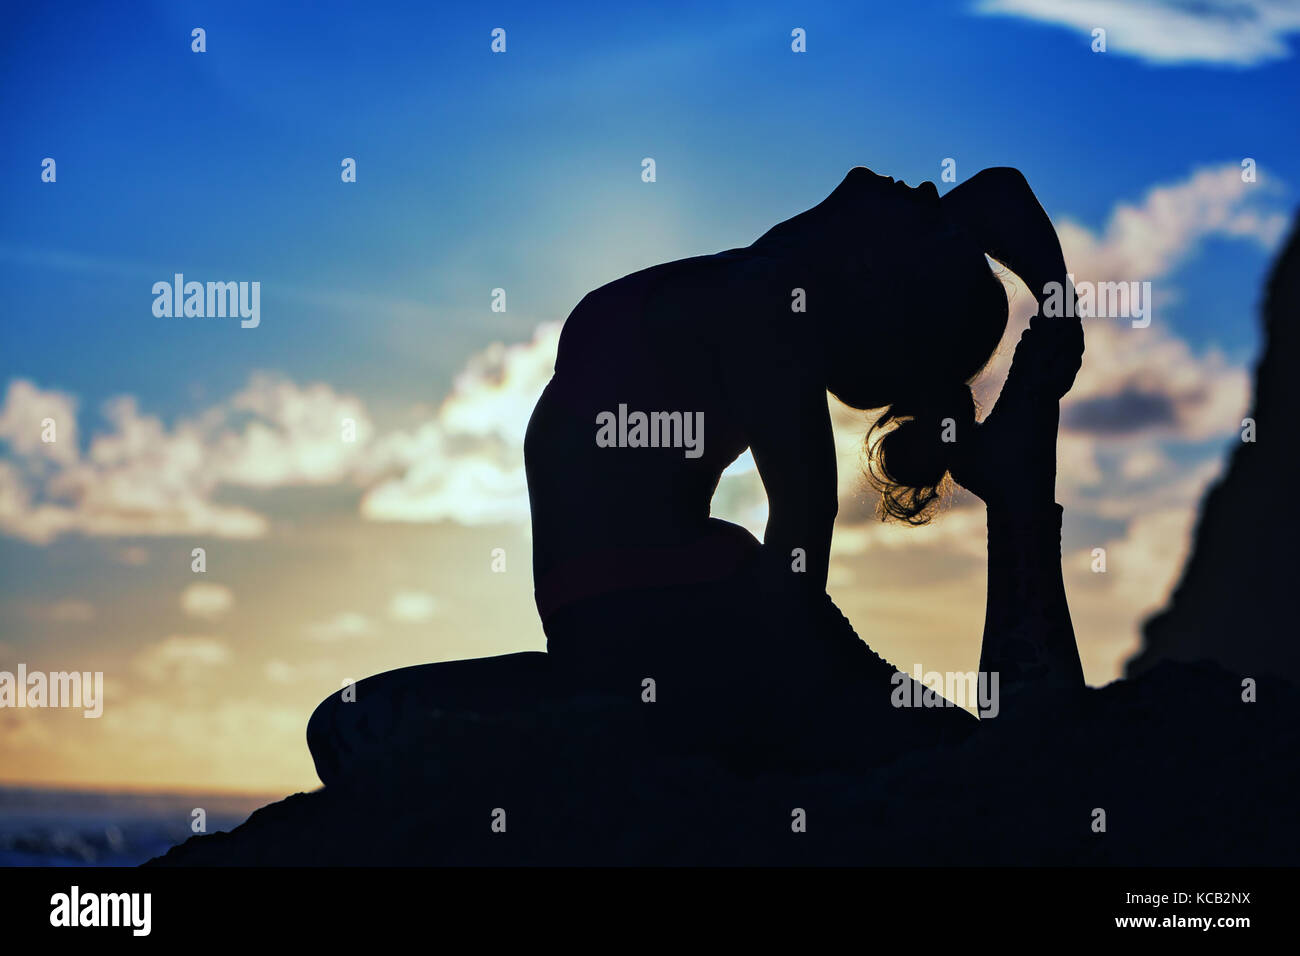 Woman black silhouette on sunset sky background. Young active girl sit in yoga pose on beach rock, stretching to - Stock Image